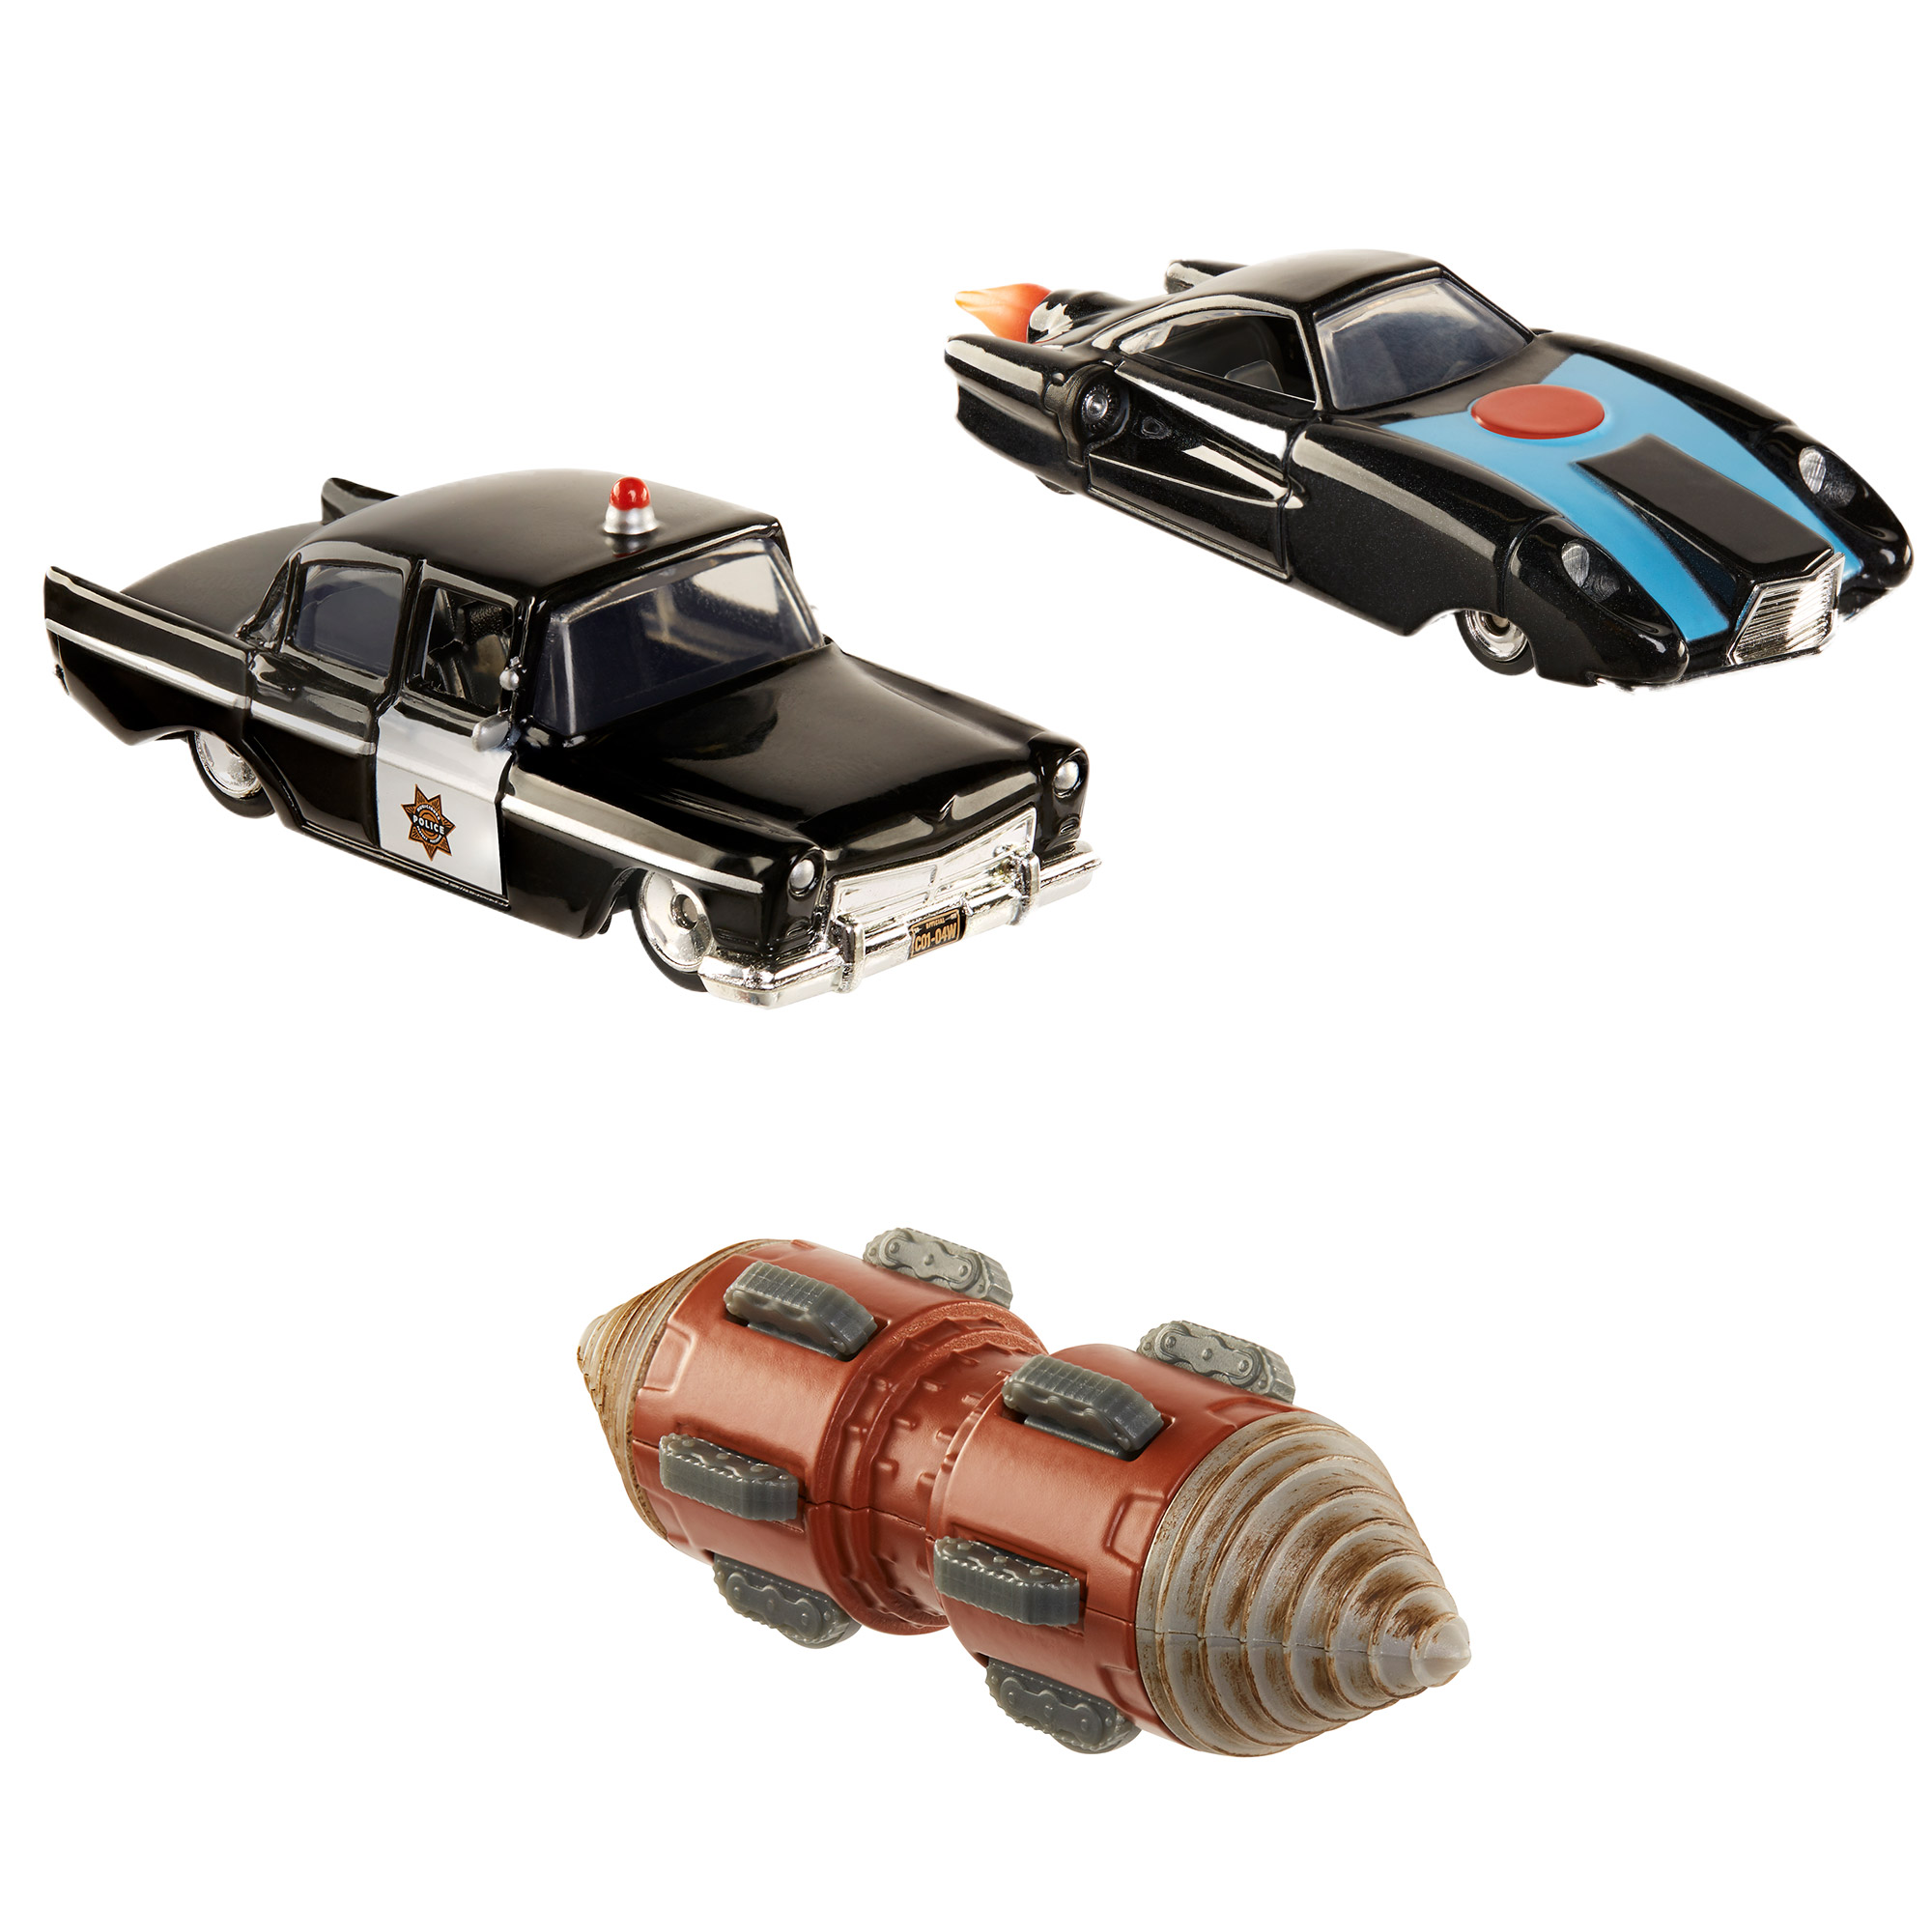 1:64th Die-cast Vehicle Assortment